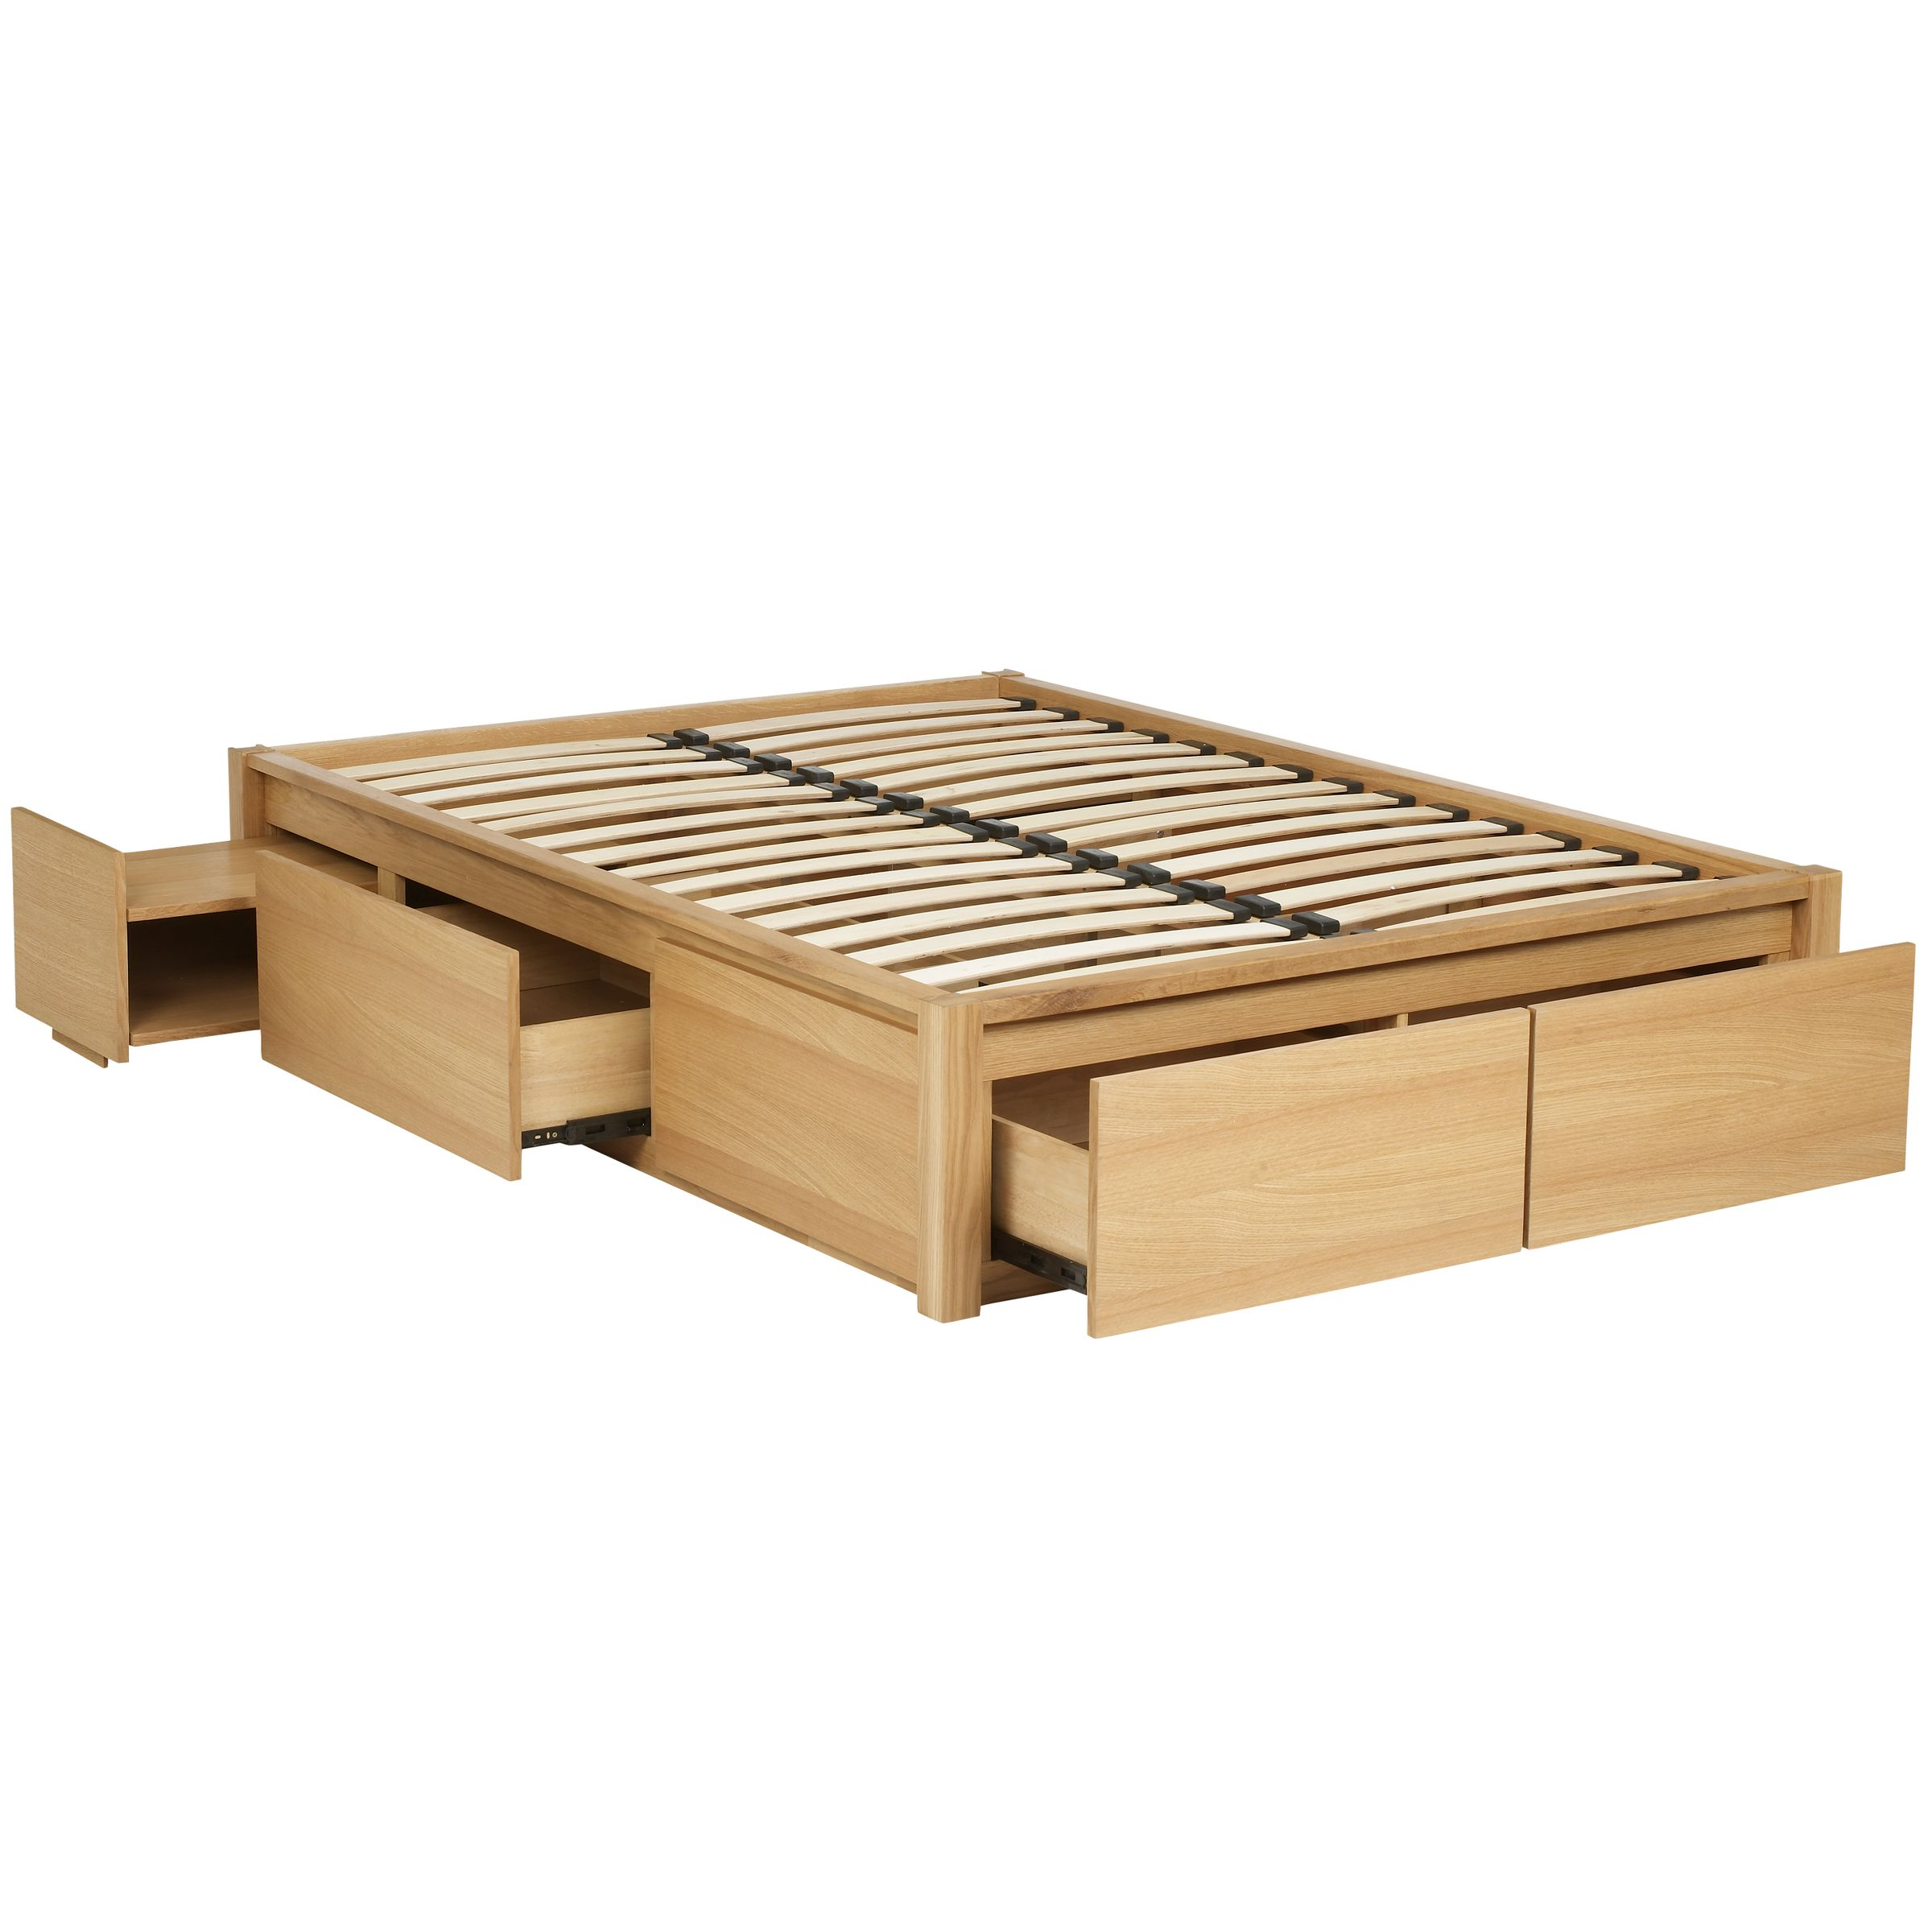 Double Bed Base With Storage Australia